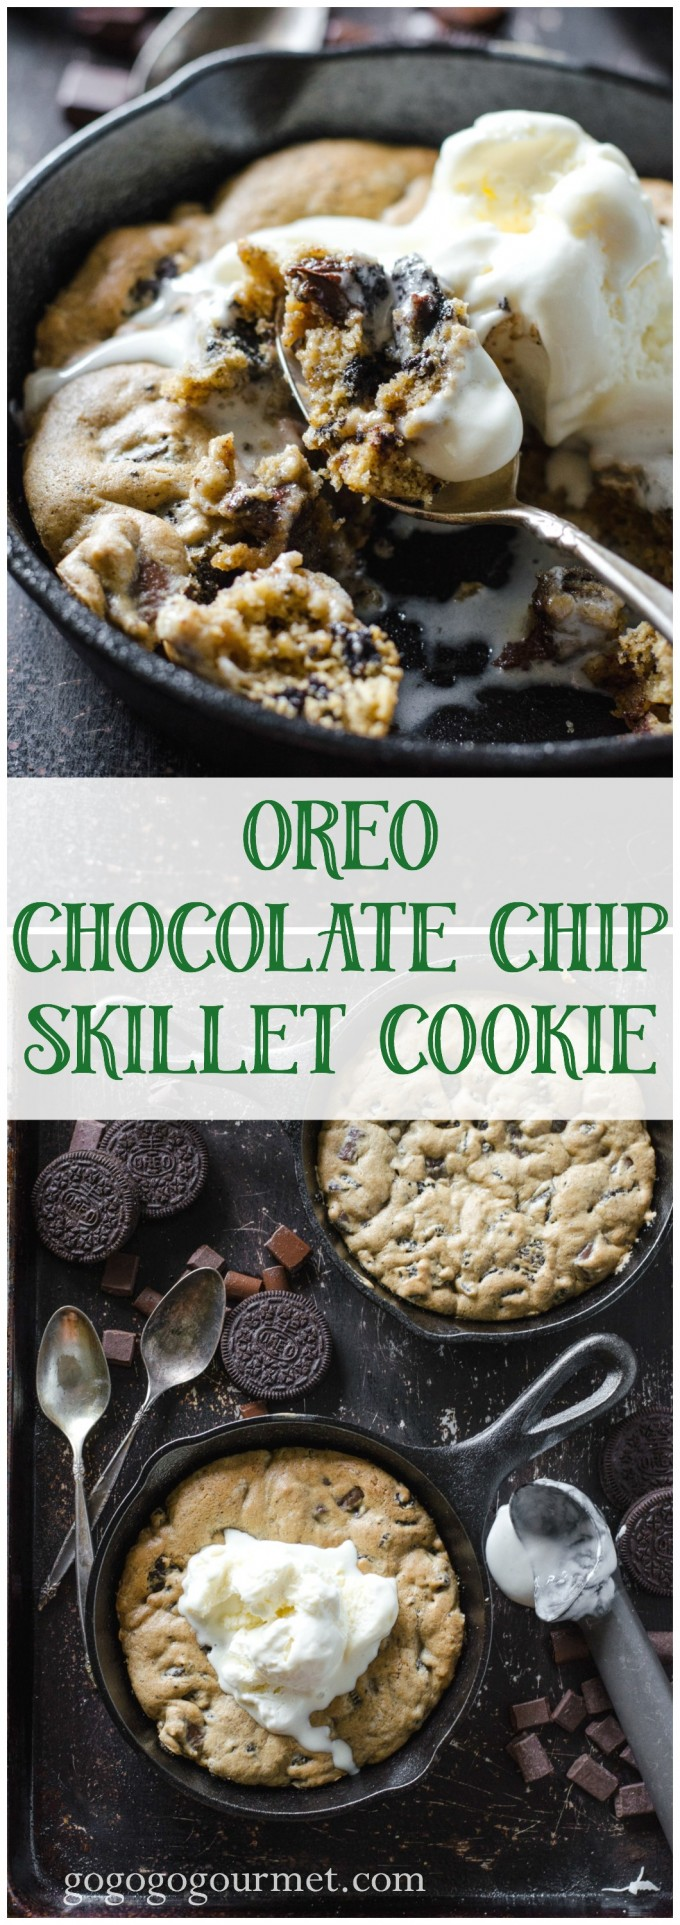 Unbelievable chocolate chip cookie, plus Oreo, warm from the oven and topped with ice cream. Did I mention it's single serving?? Oreo Chocolate Chip Skillet Cookie @gogogogourmet via @gogogogourmet